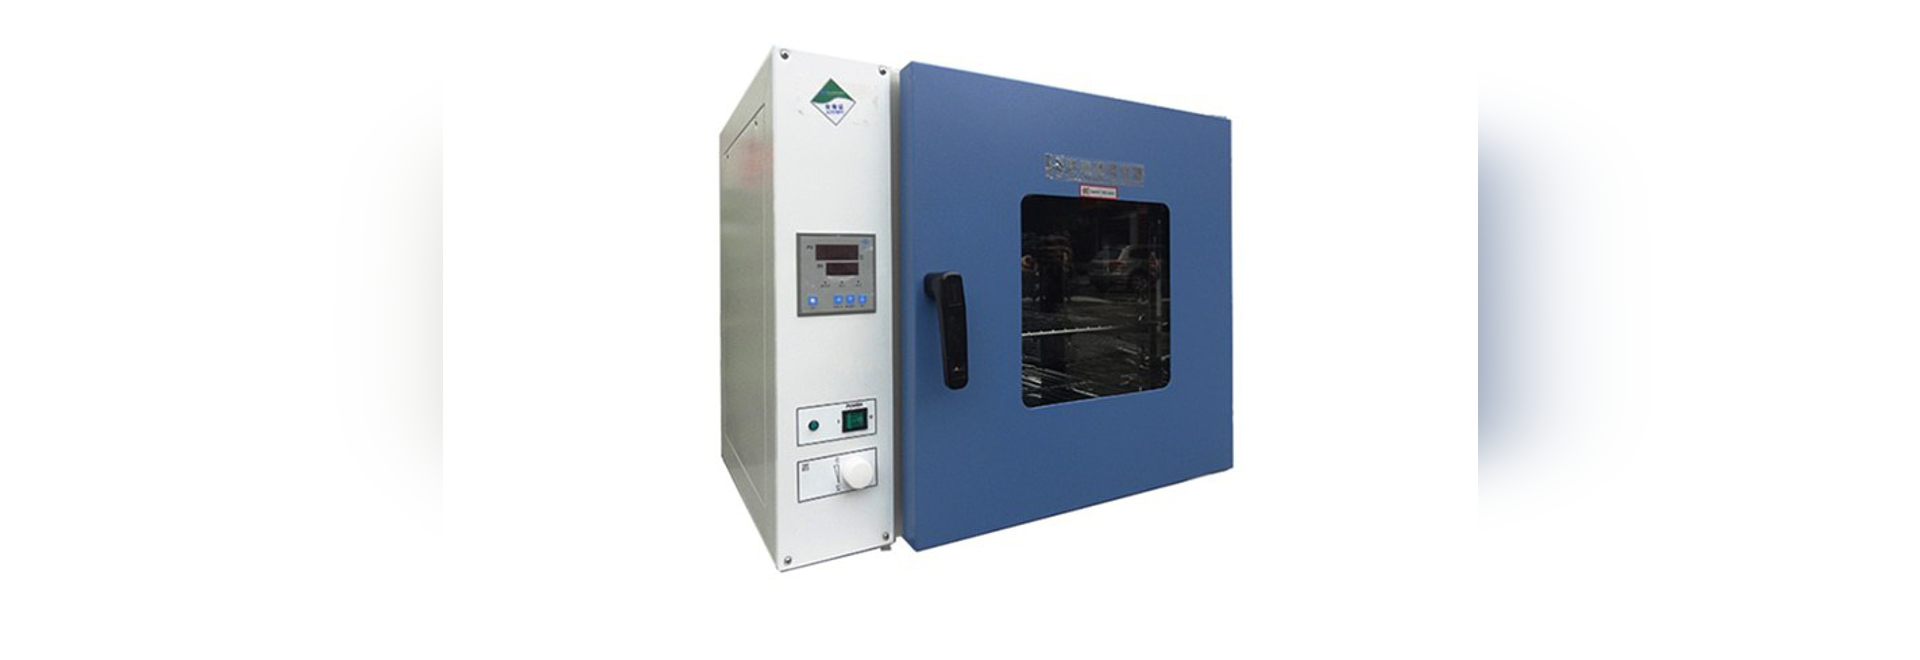 drying oven / chamber / electric / hot air Equipment